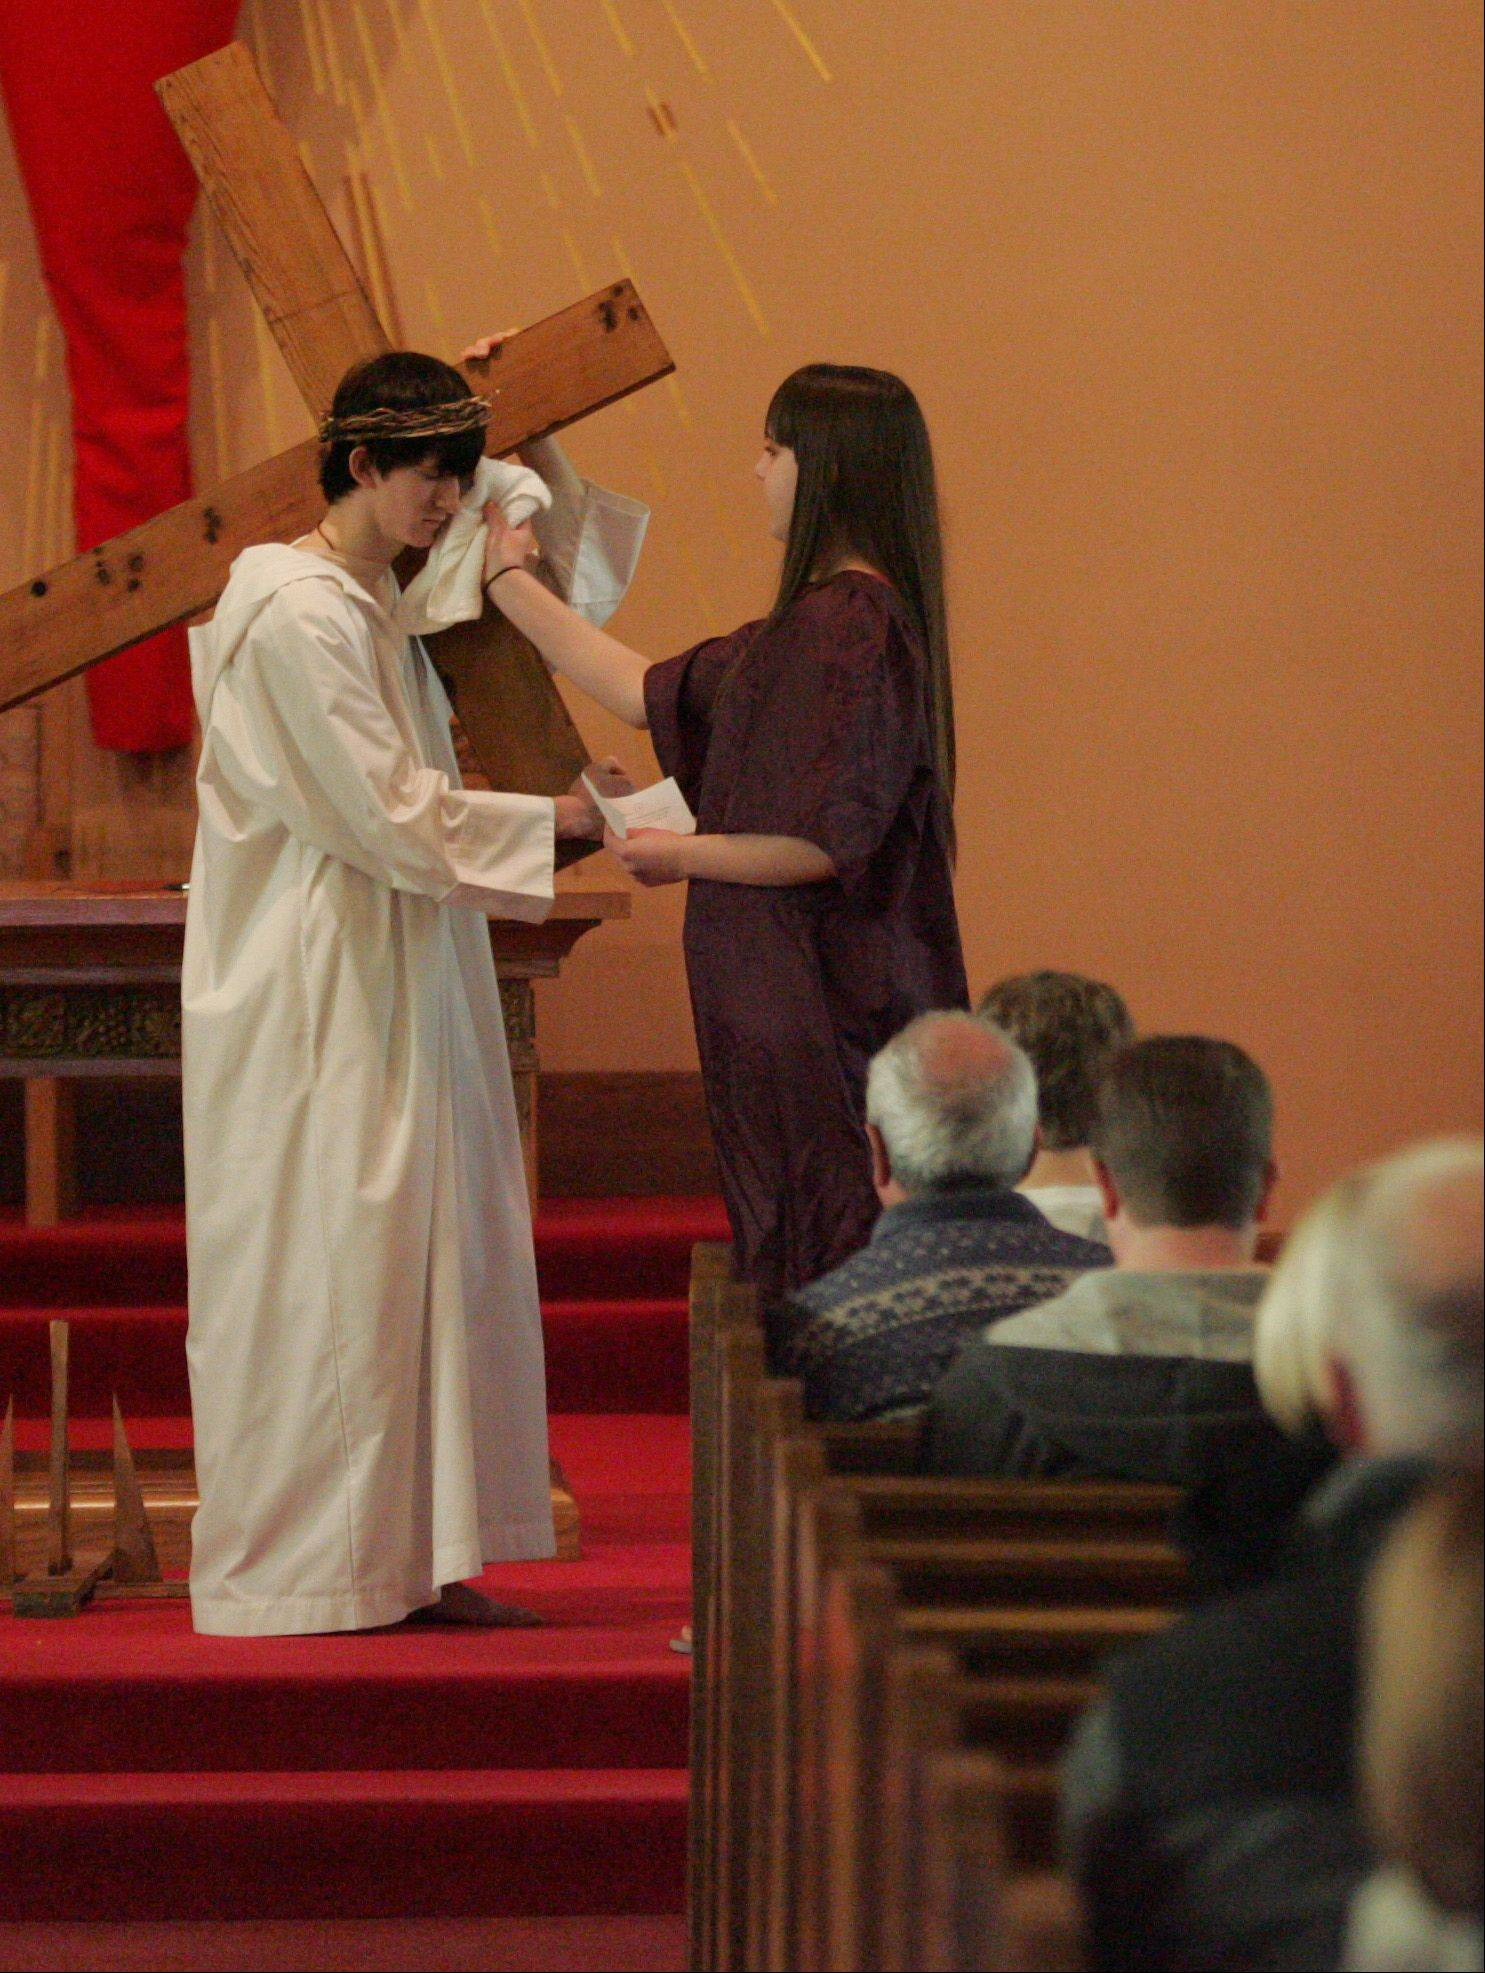 Veronica, portrayed by Aimee Frost, 15, wipes the face of Jesus, portrayed by T.J. Foley, 18, at the sixth station during a living Stations of the Cross Friday afternoon at St. Gall Catholic Church in Elburn. Both are from Elburn. The youth group at the church put the program together.